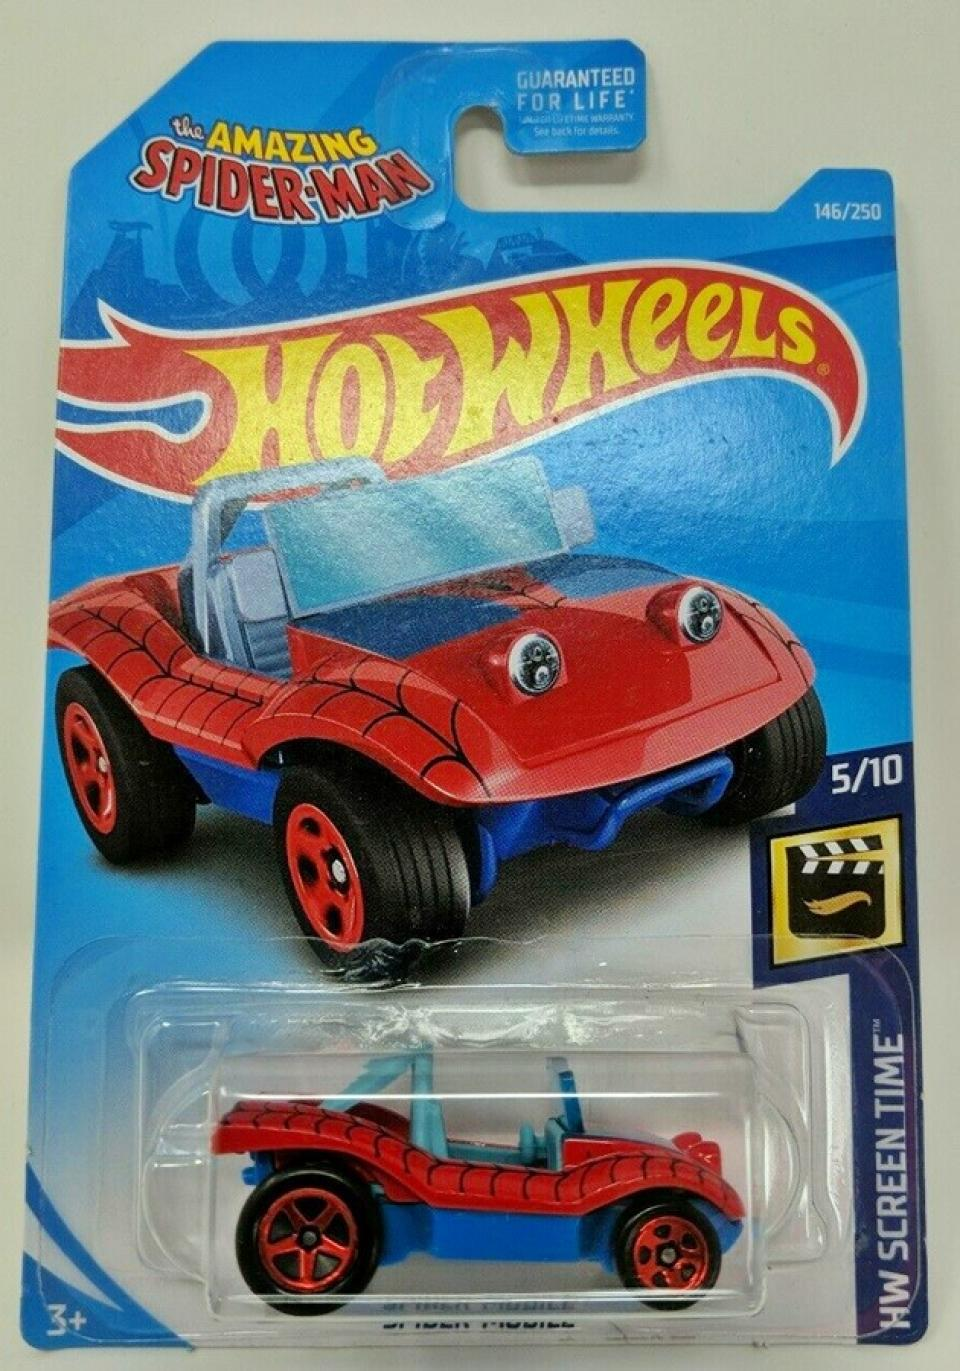 Spider-Mobile Hot Wheels